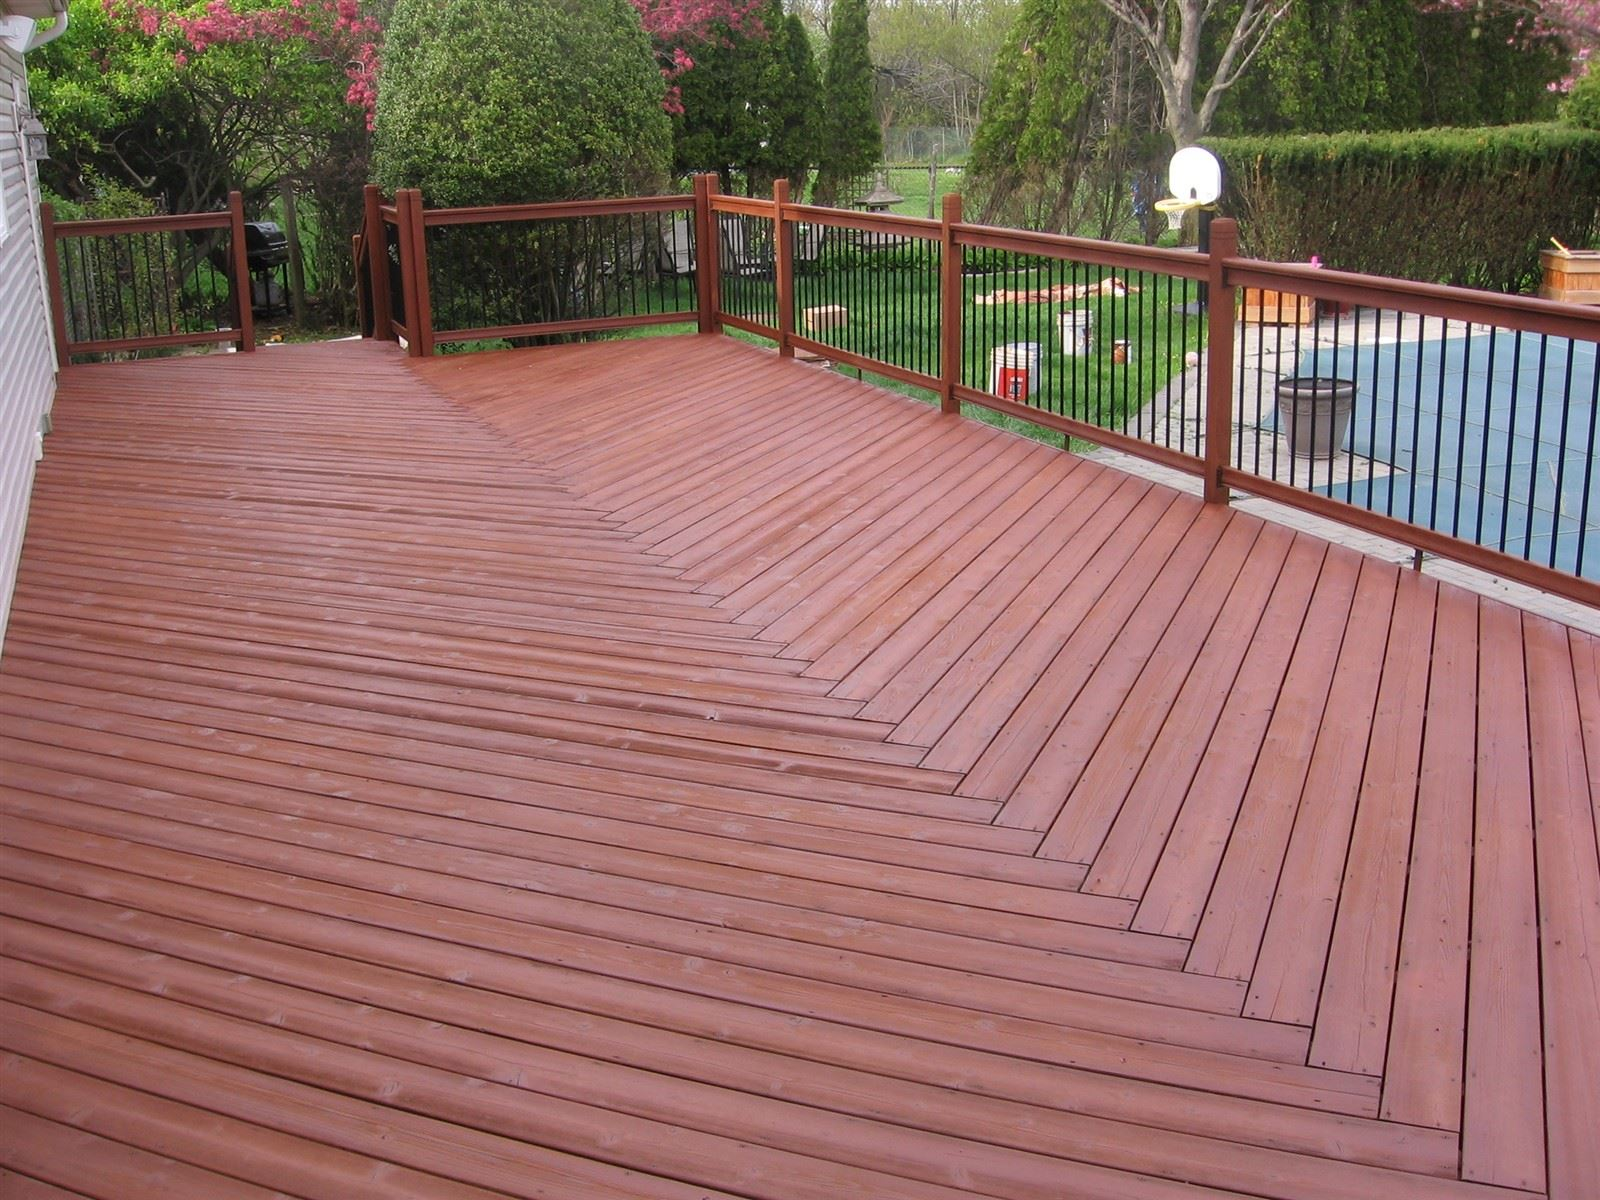 After staining with Sherwin-Williams Cidar Mill